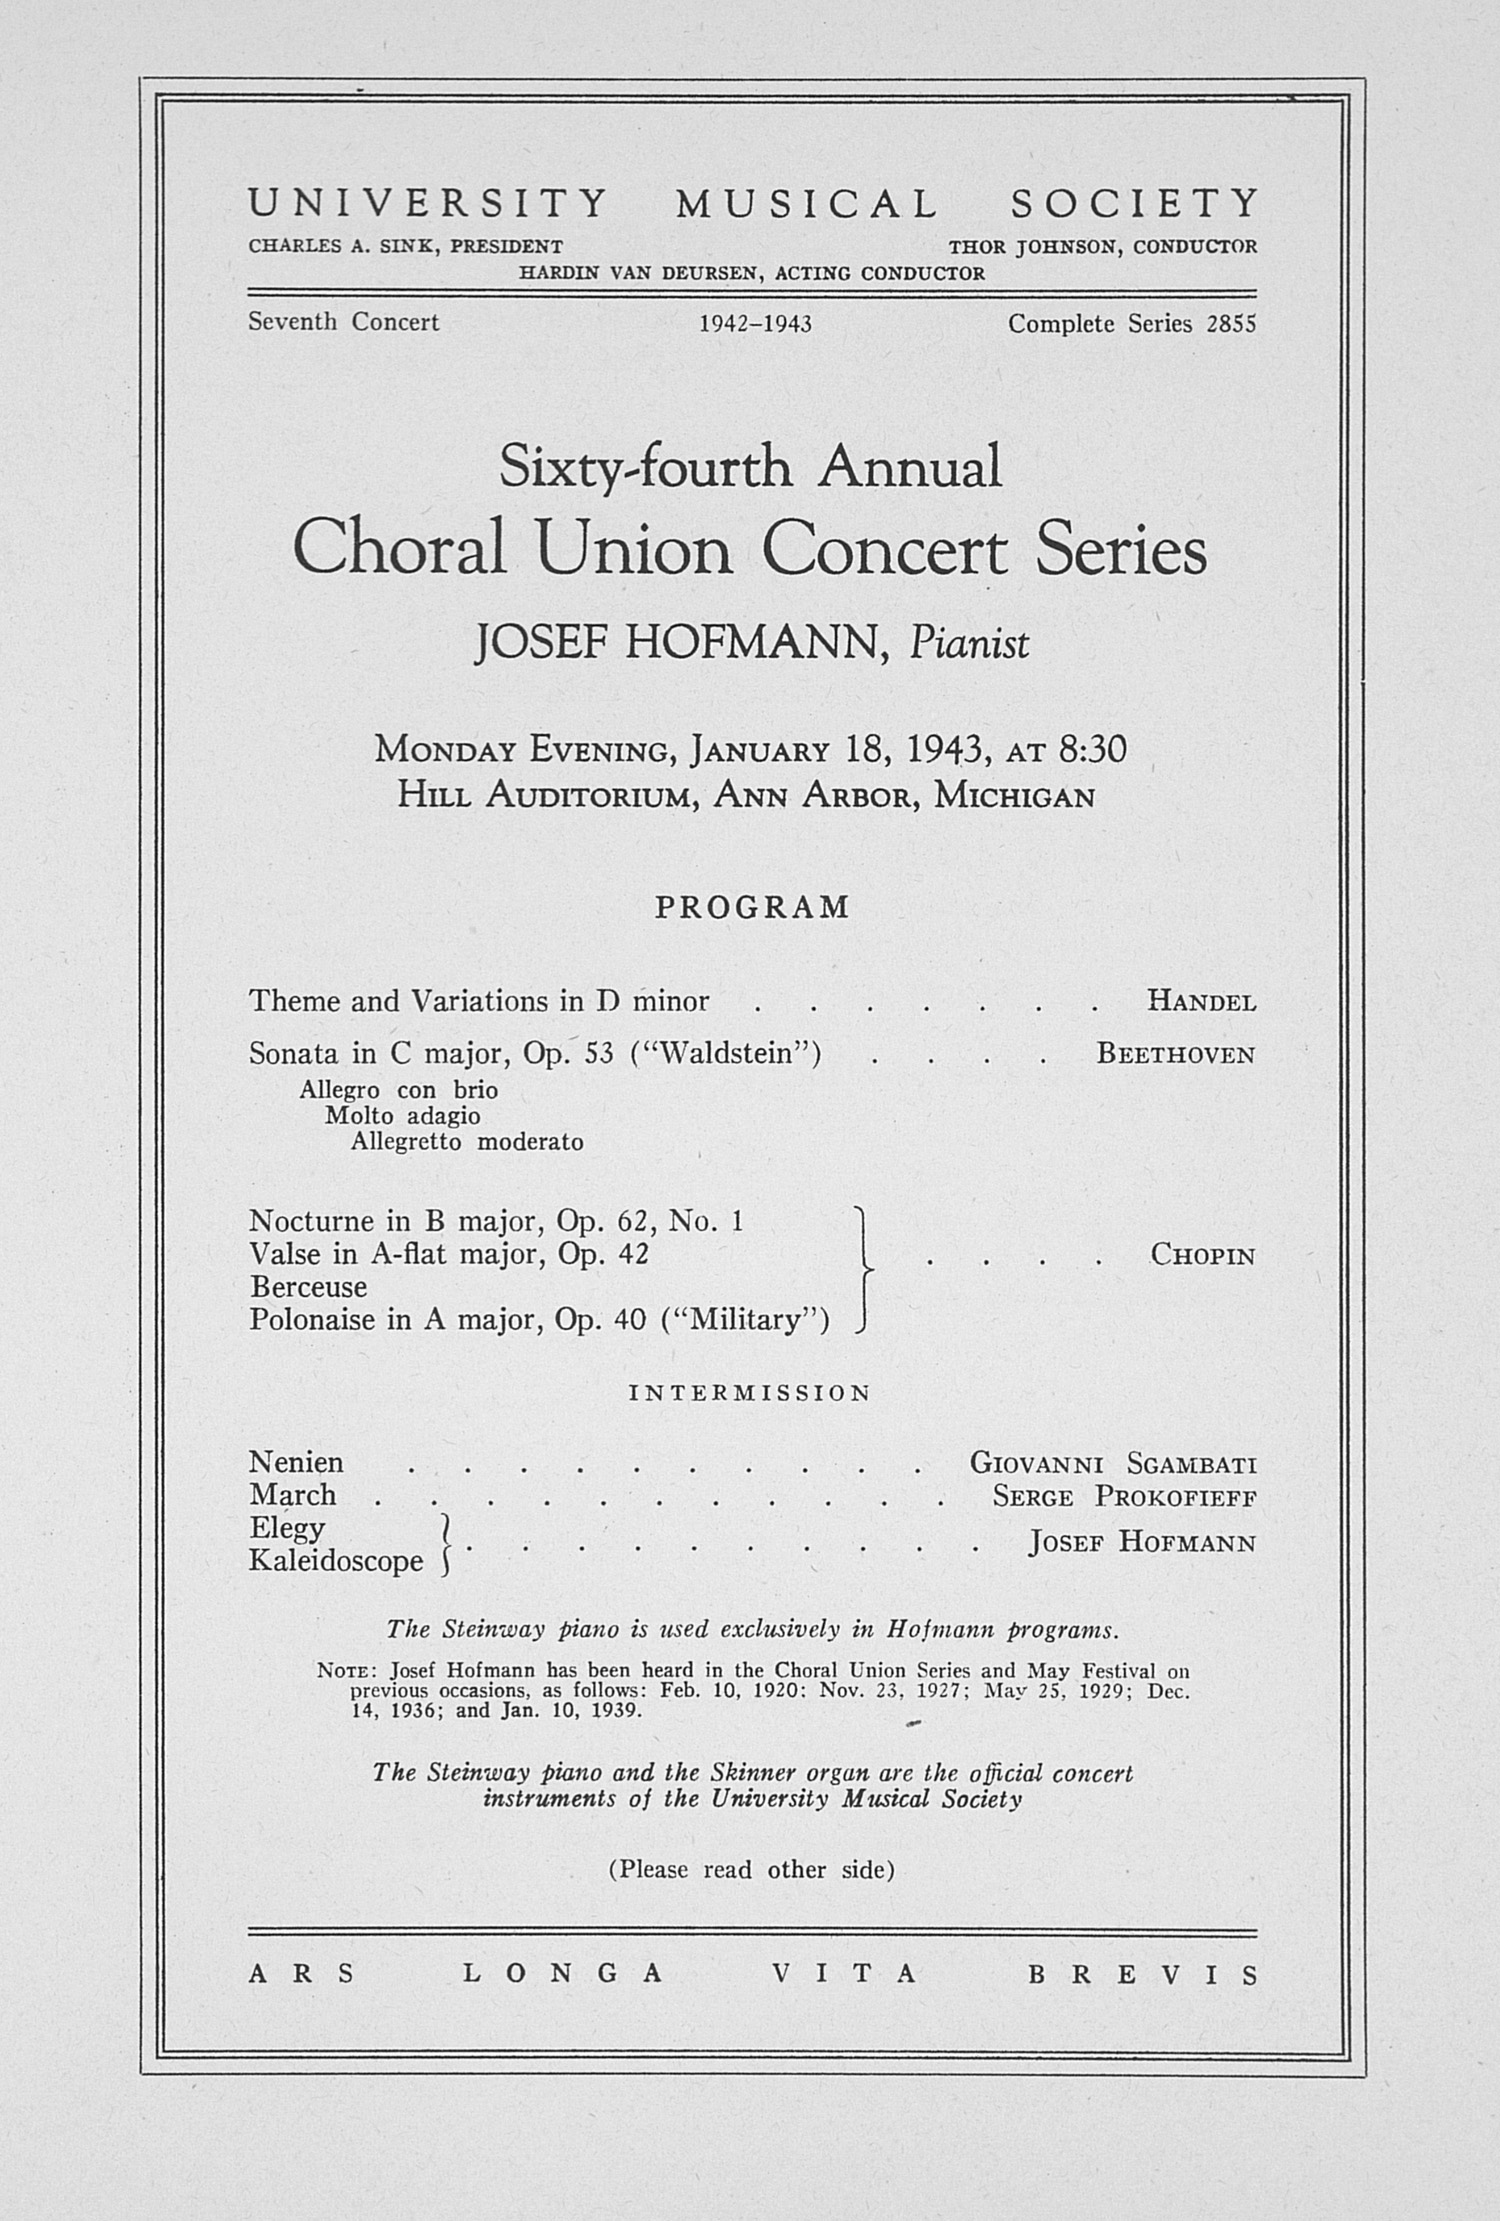 UMS Concert Program, January 18, 1943: Sixty-fourth Annual Choral Union Concert Series -- Josef Hofmann image